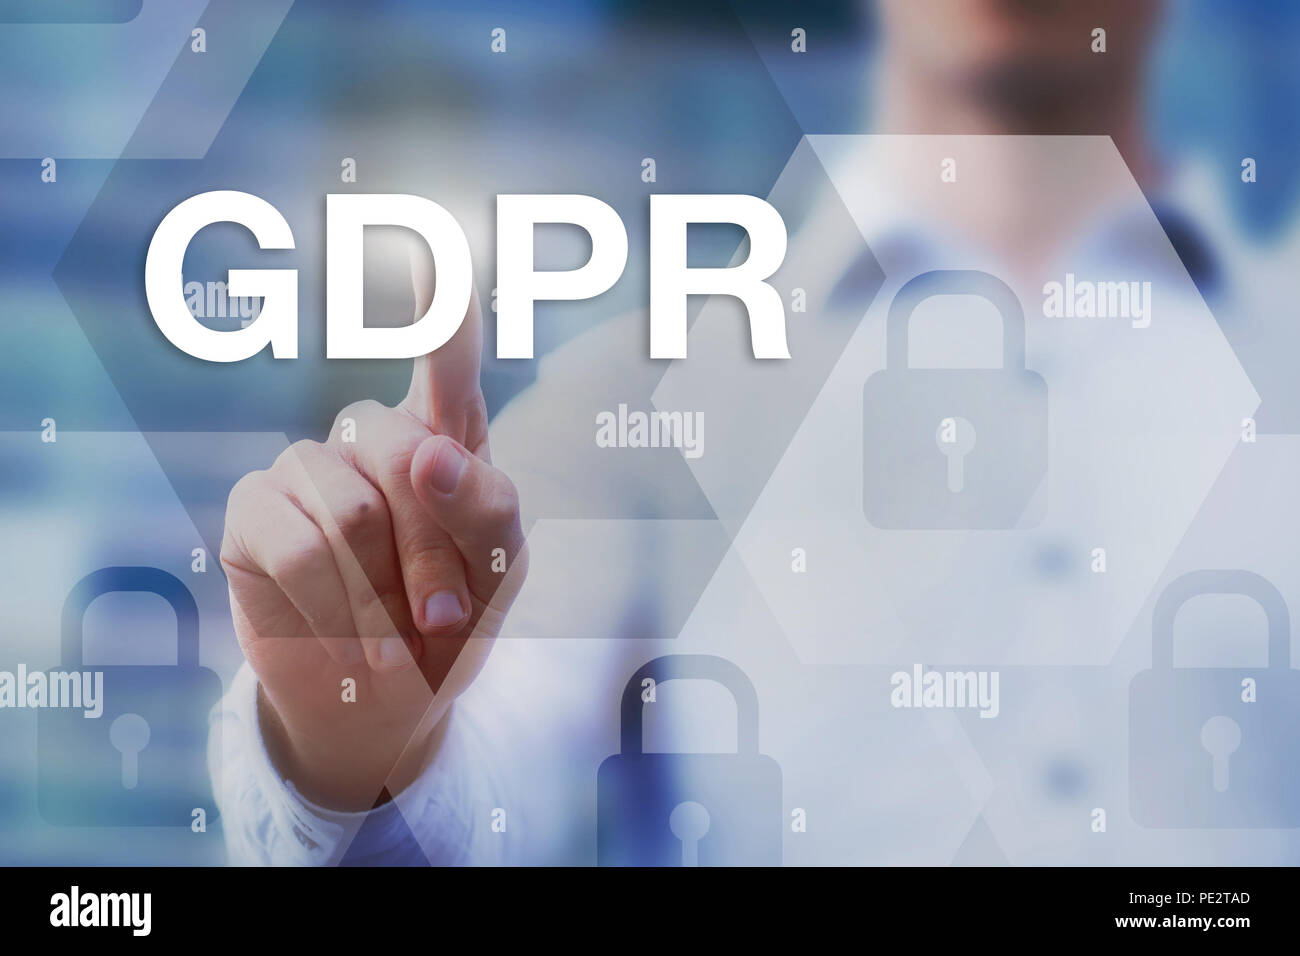 GDPR, General Data Protection Regulation, concept on touch screen - Stock Image